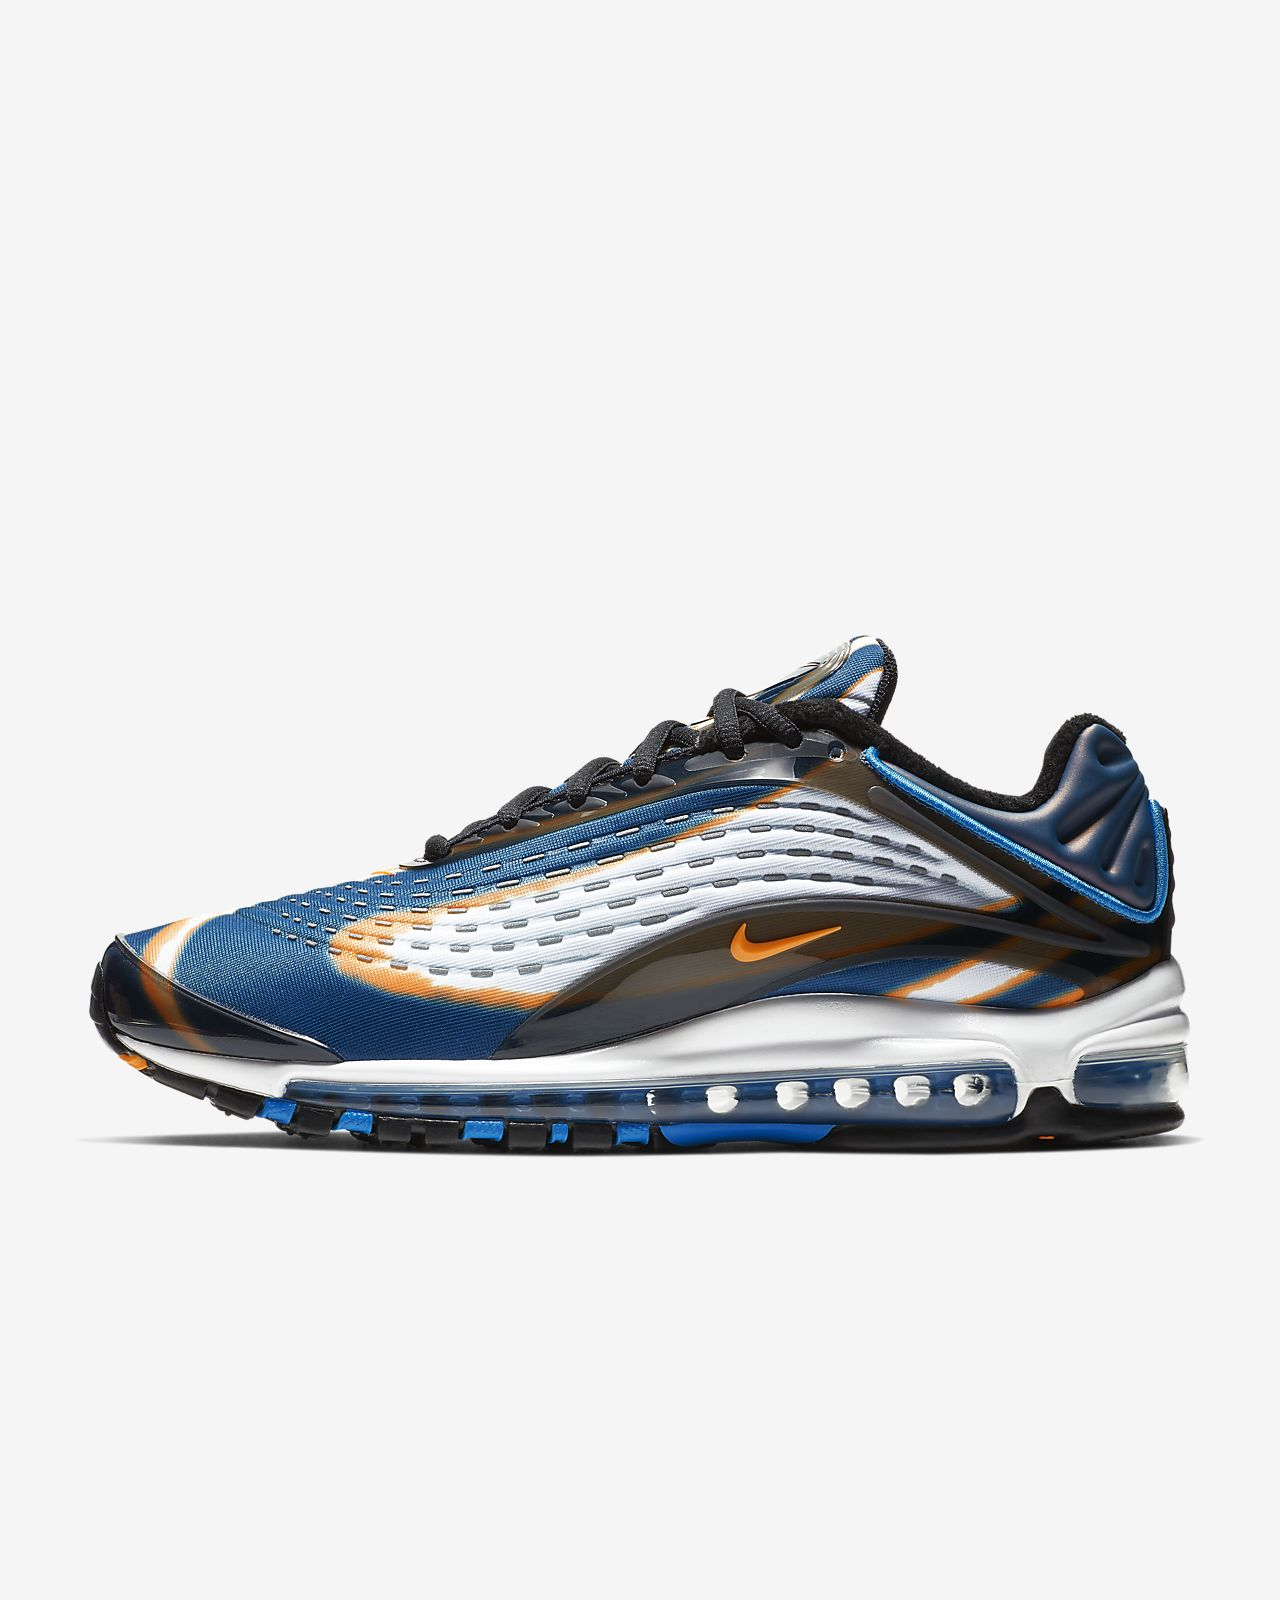 48832a3bca5 Nike Air Max Deluxe Men s Shoe. Nike.com